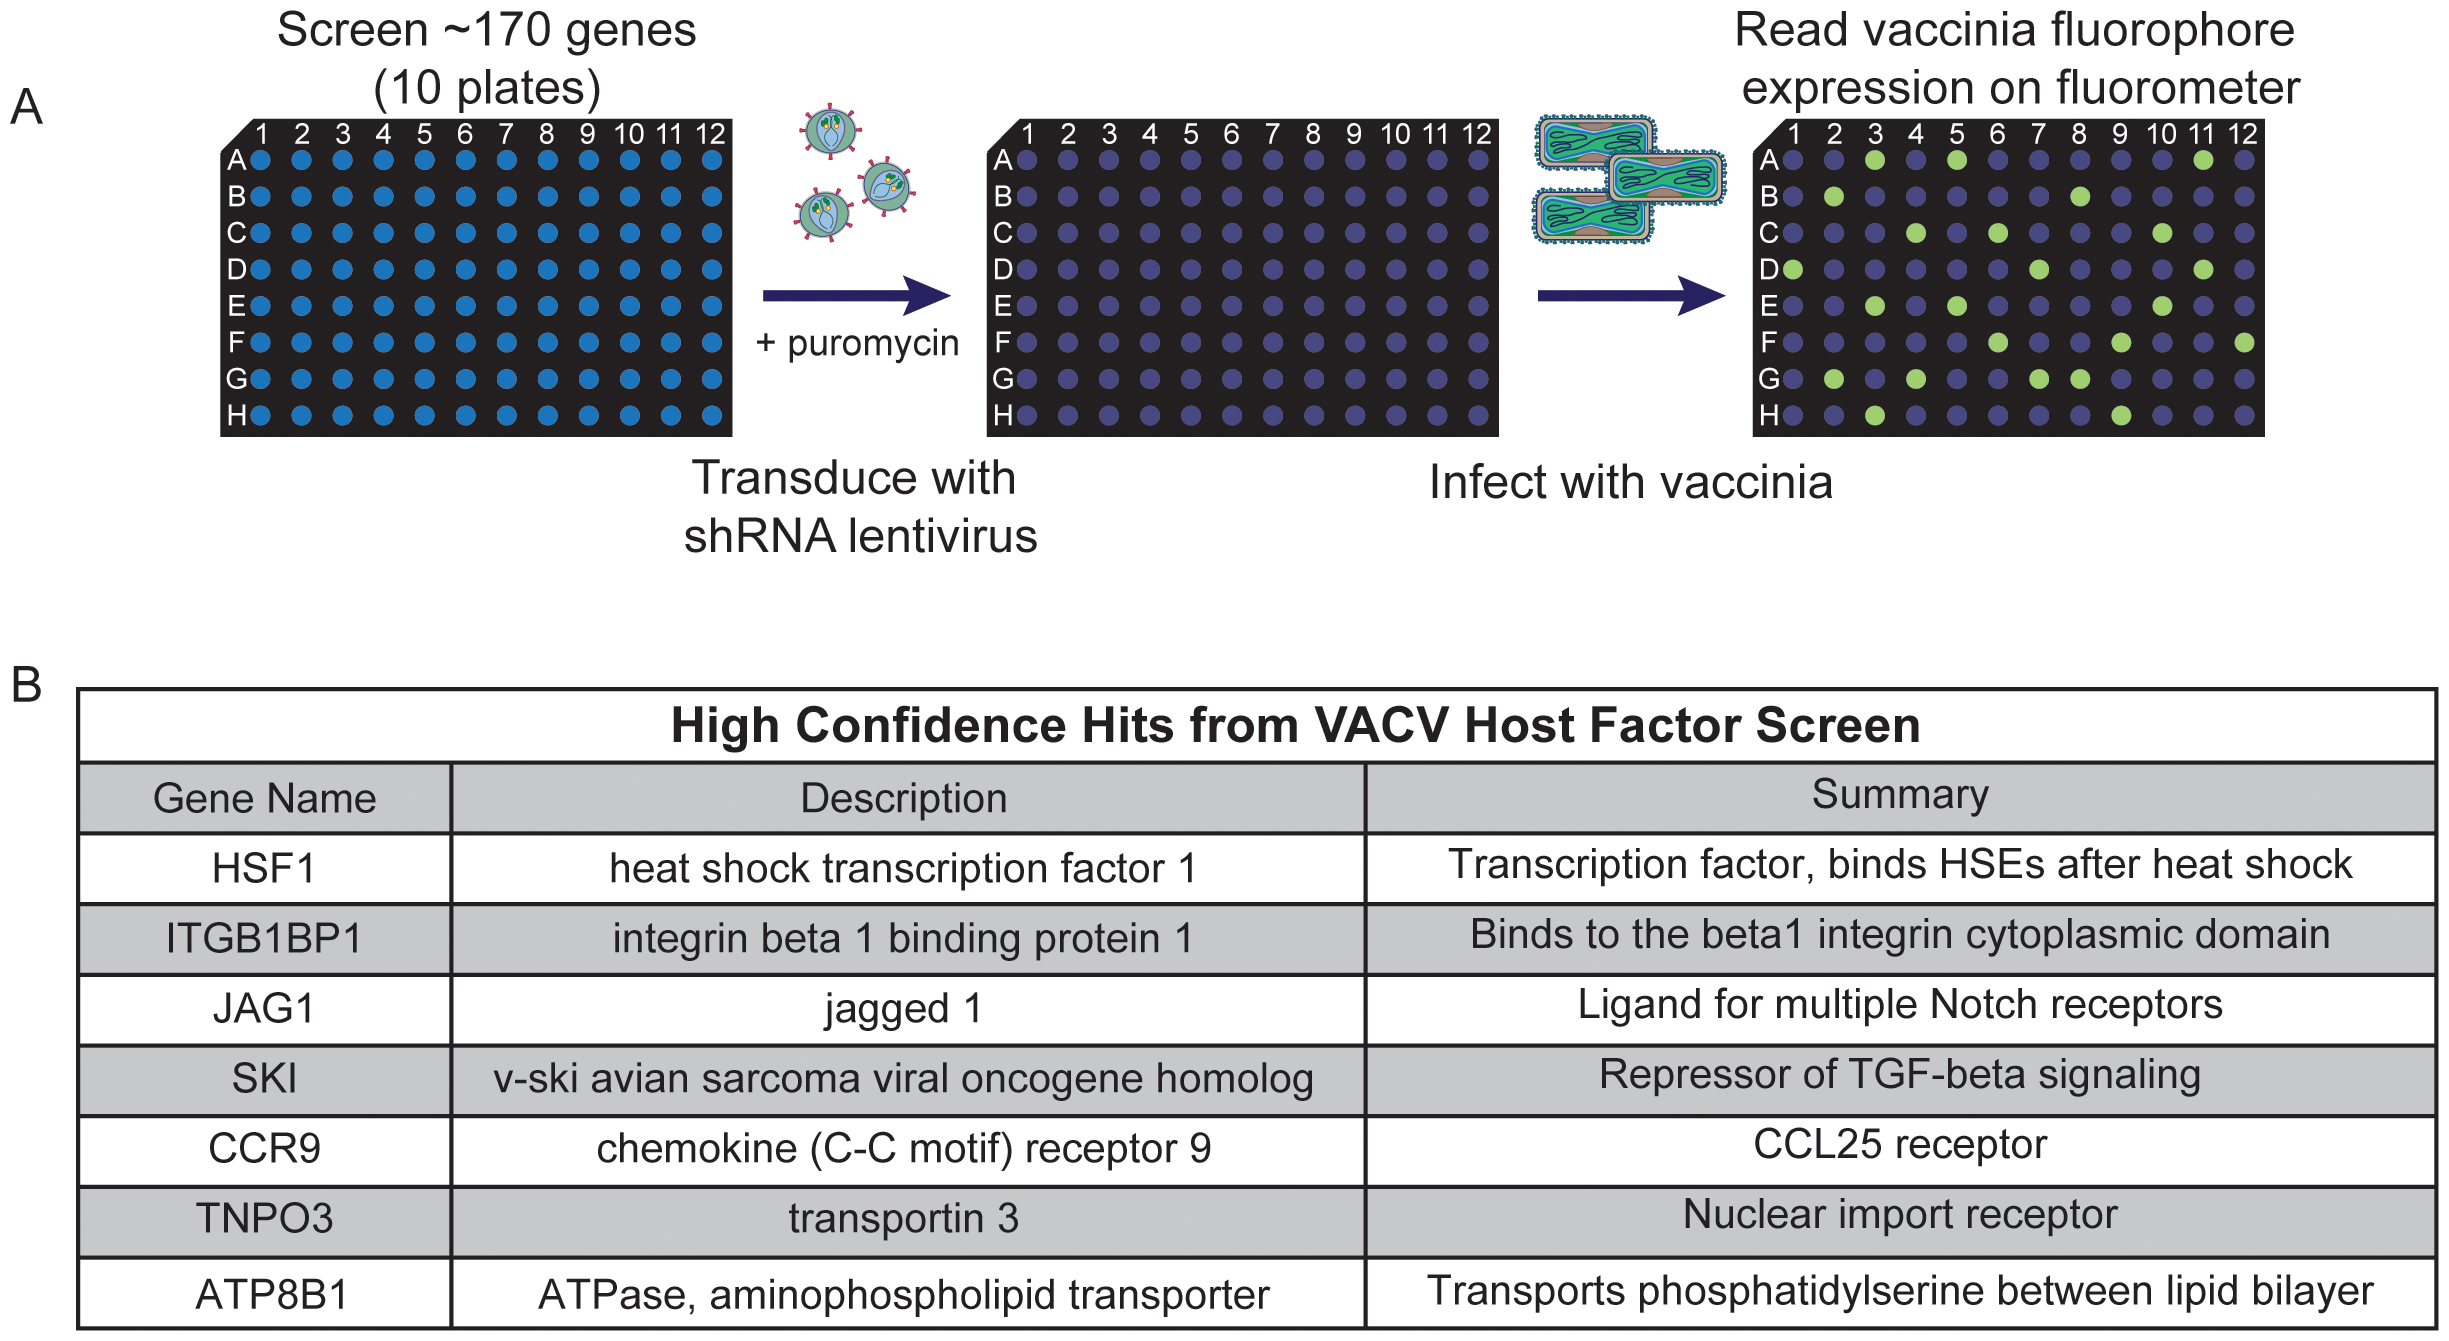 High confidence hits identified in secondary screen.